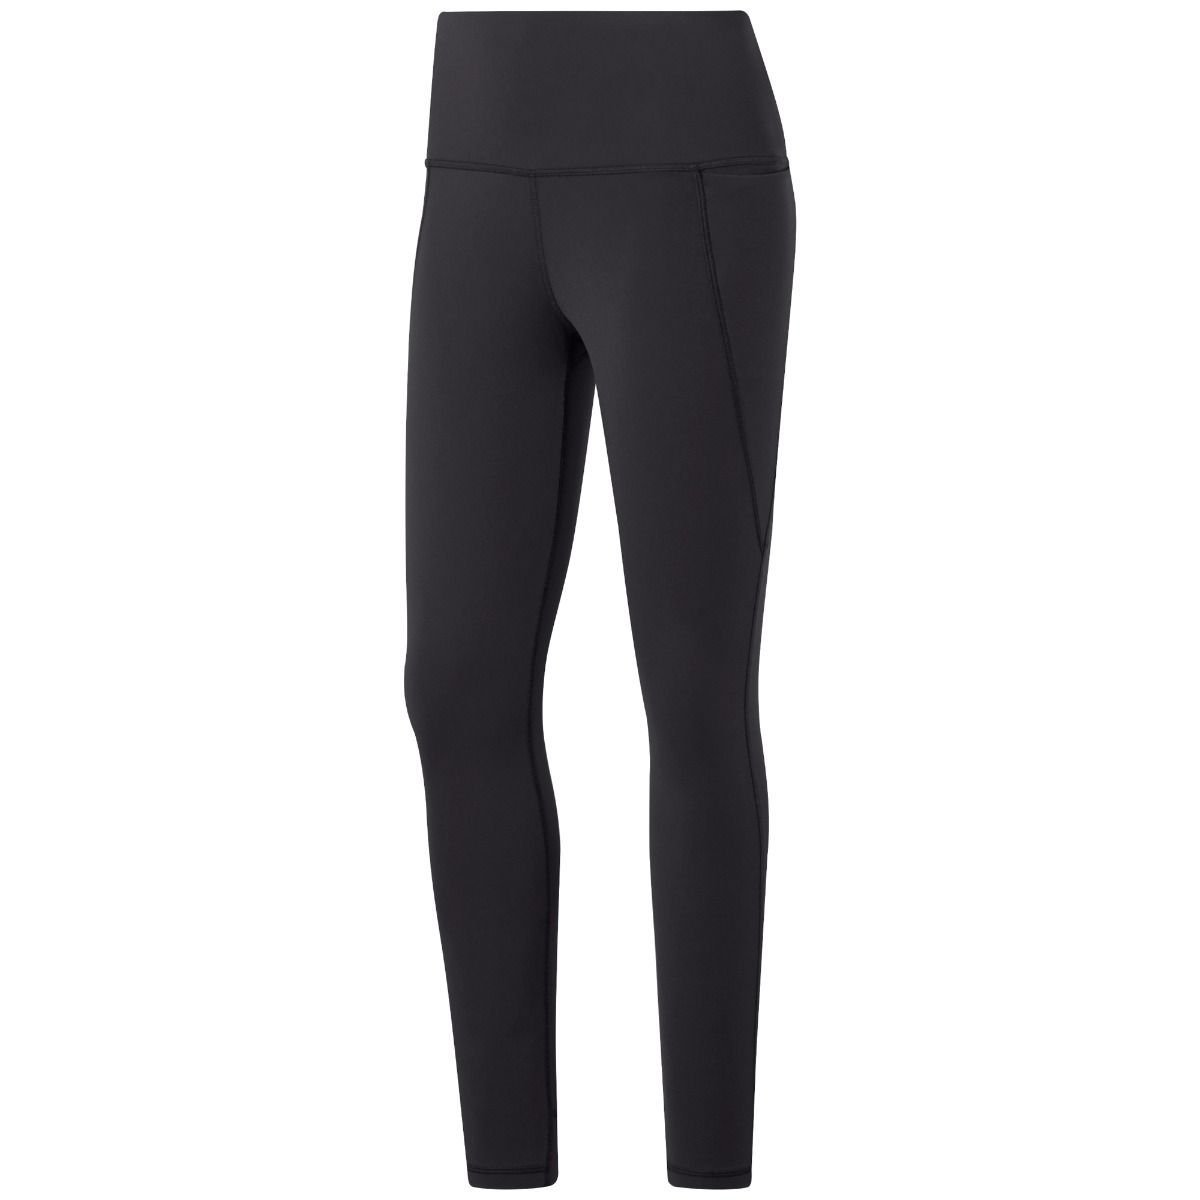 Lux High-Rise Tights 2.0 Dame - Sort